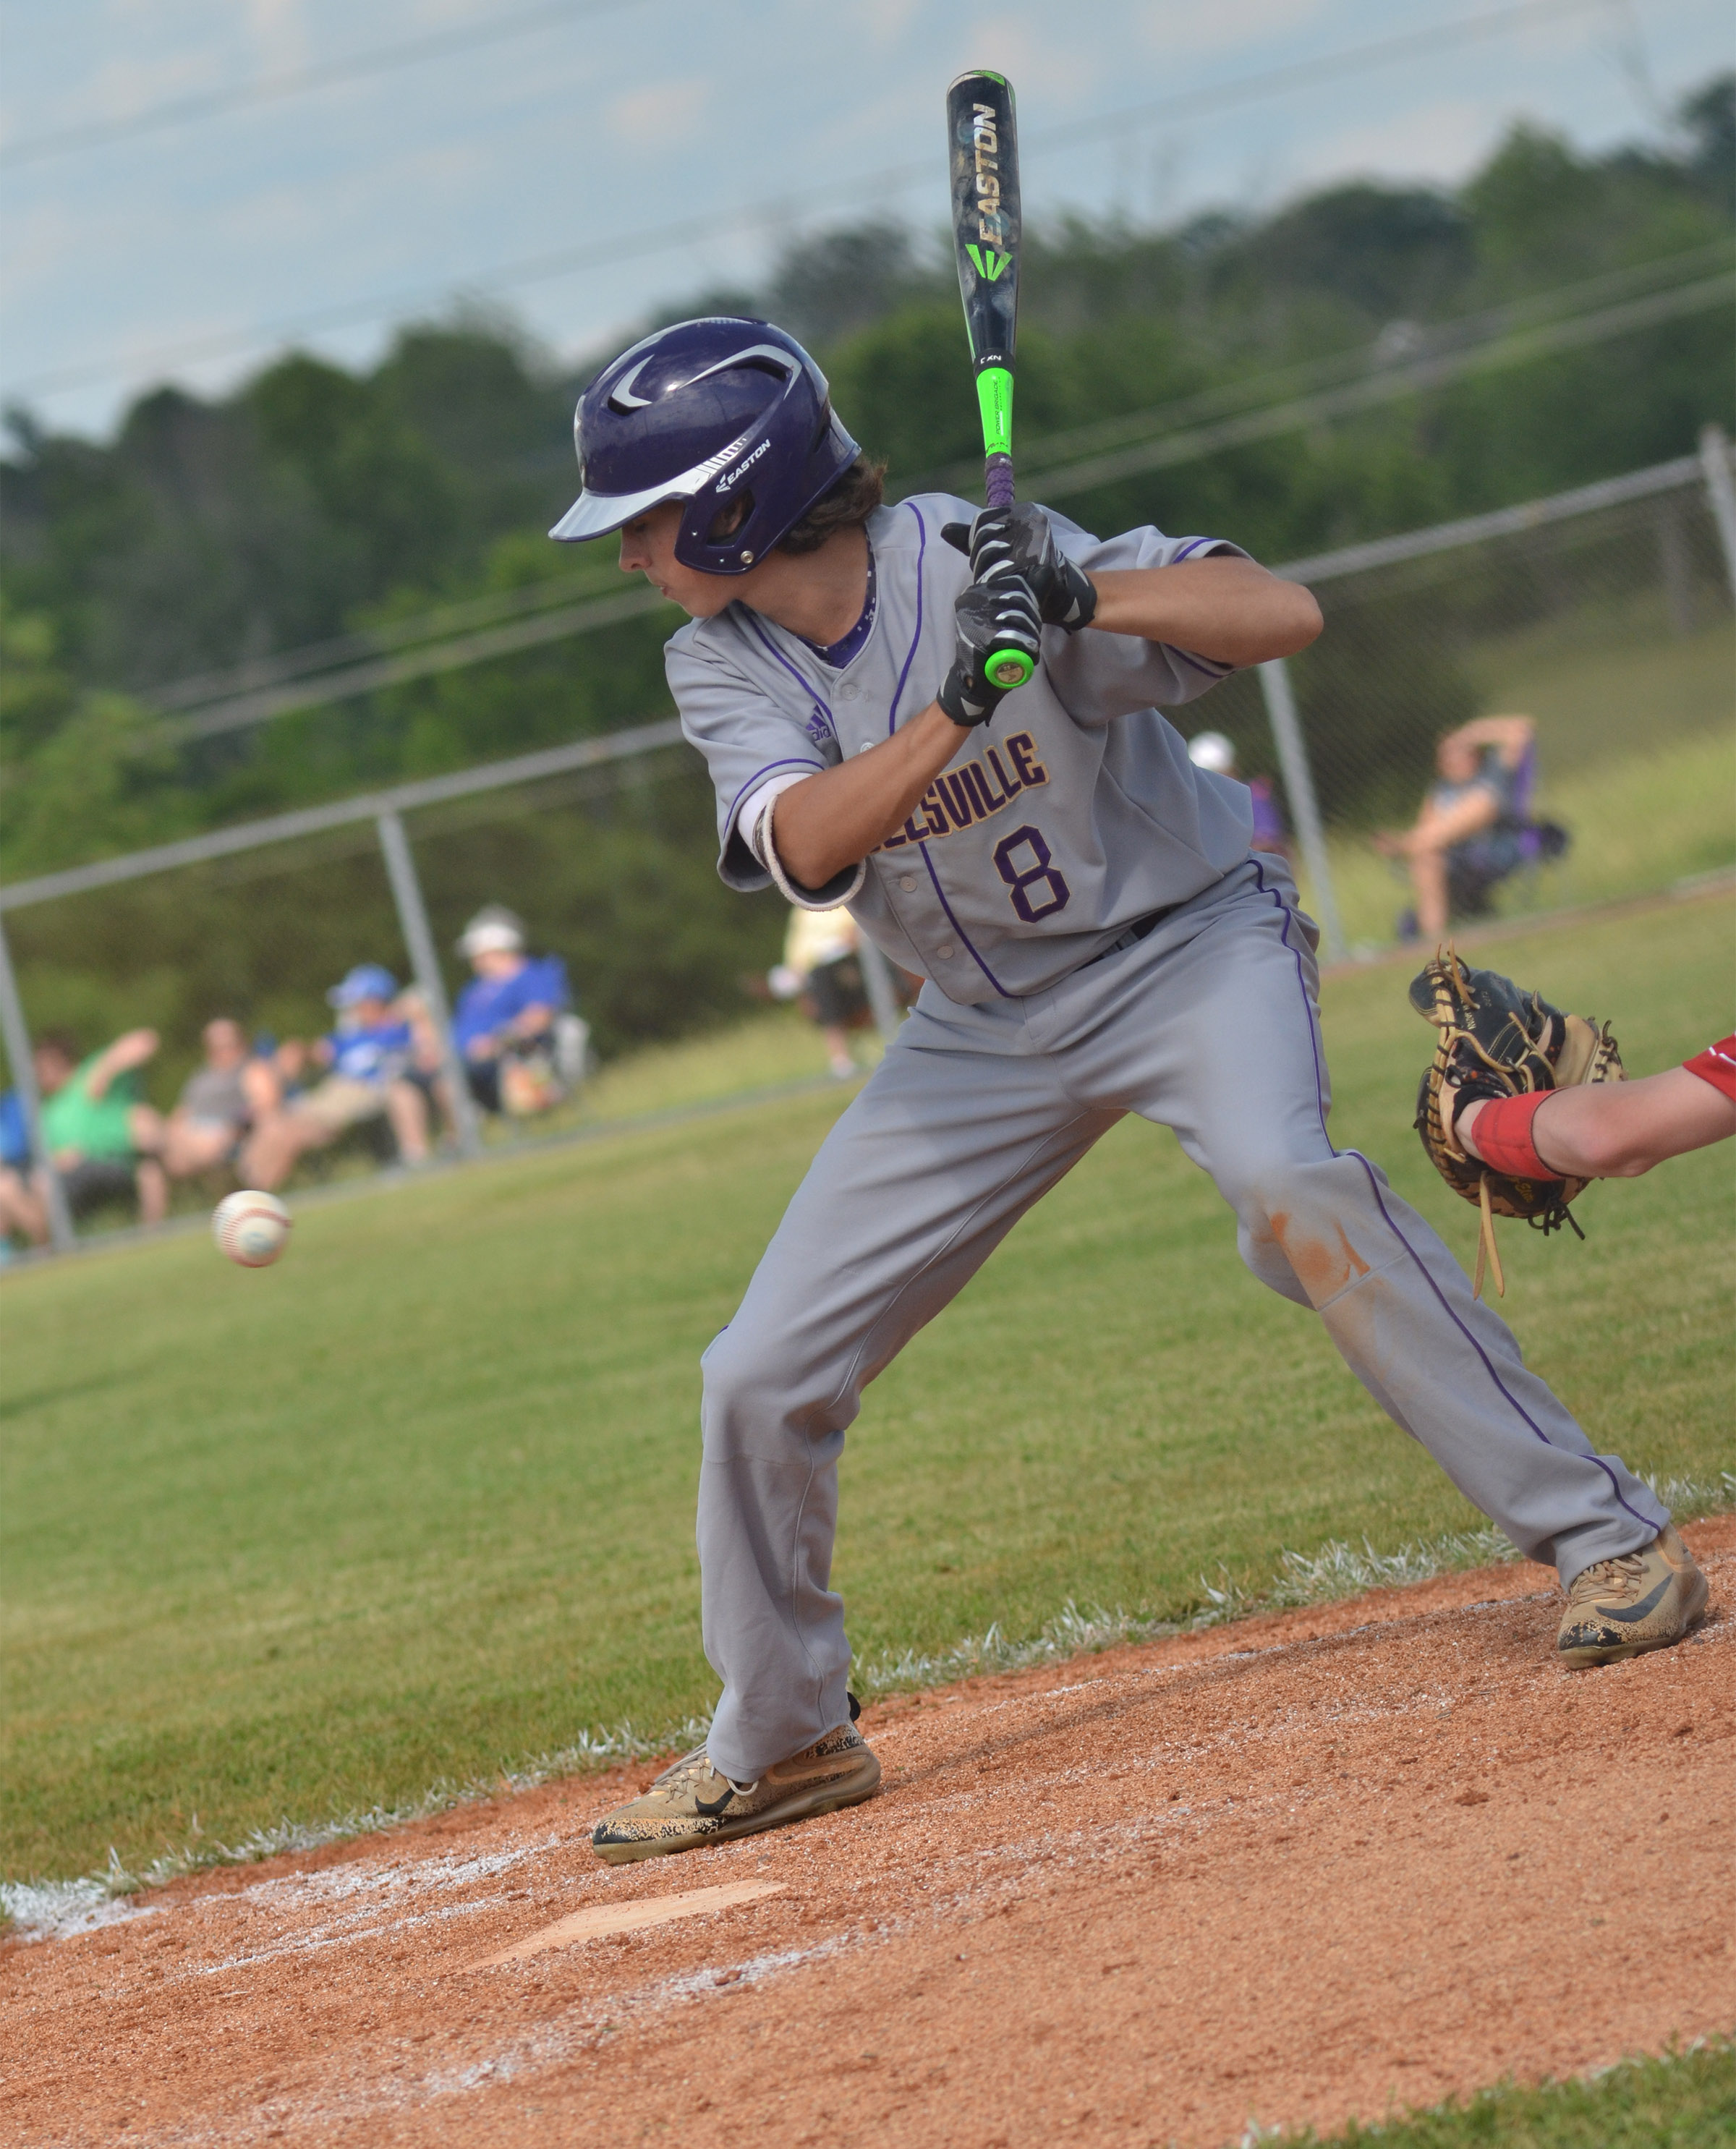 Campbellsville Middle School eighth-grader John Orberson passes on a pitch.